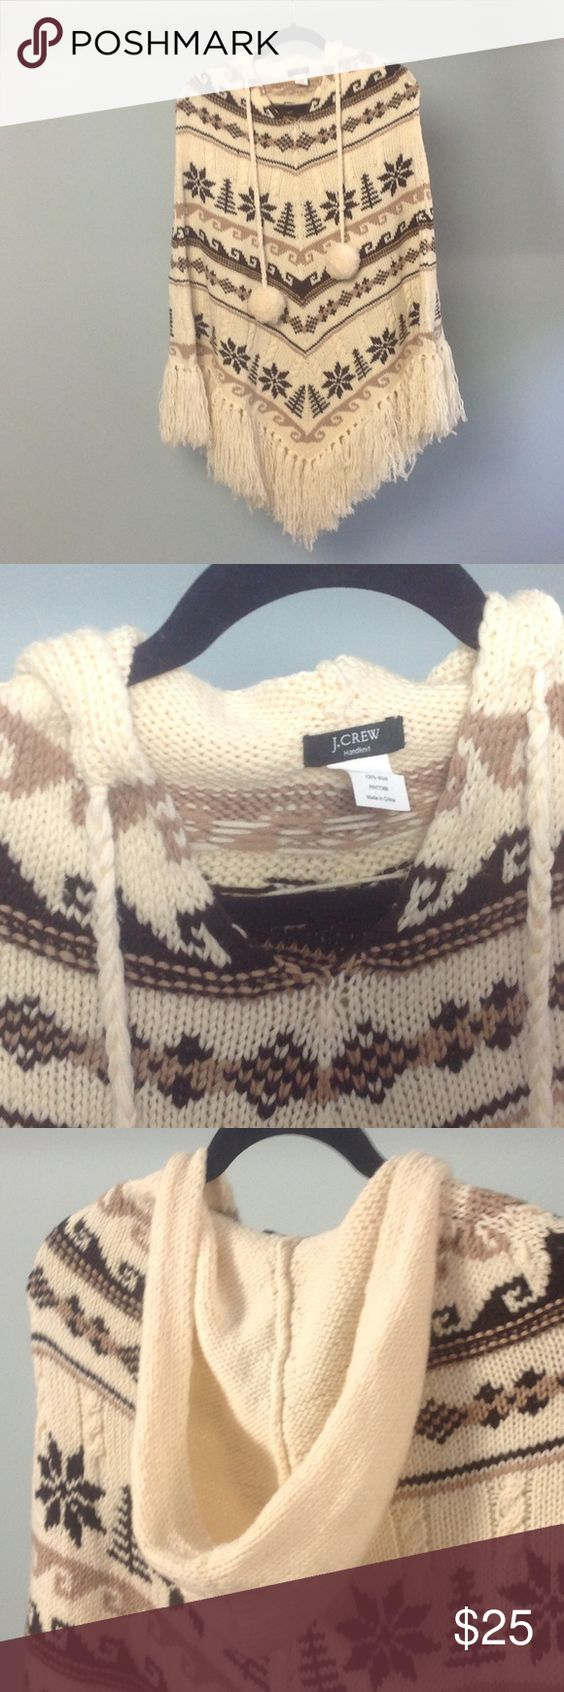 J. Crew Hand-knit Hippy-chick Poncho! Hand-knit poncho with hood and fringe on the bottom (of course) brings out the bohemian in you. Very cute over jeans and snugly warm when you need it most. 100% wool. J. Crew Sweaters Shrugs & Ponchos